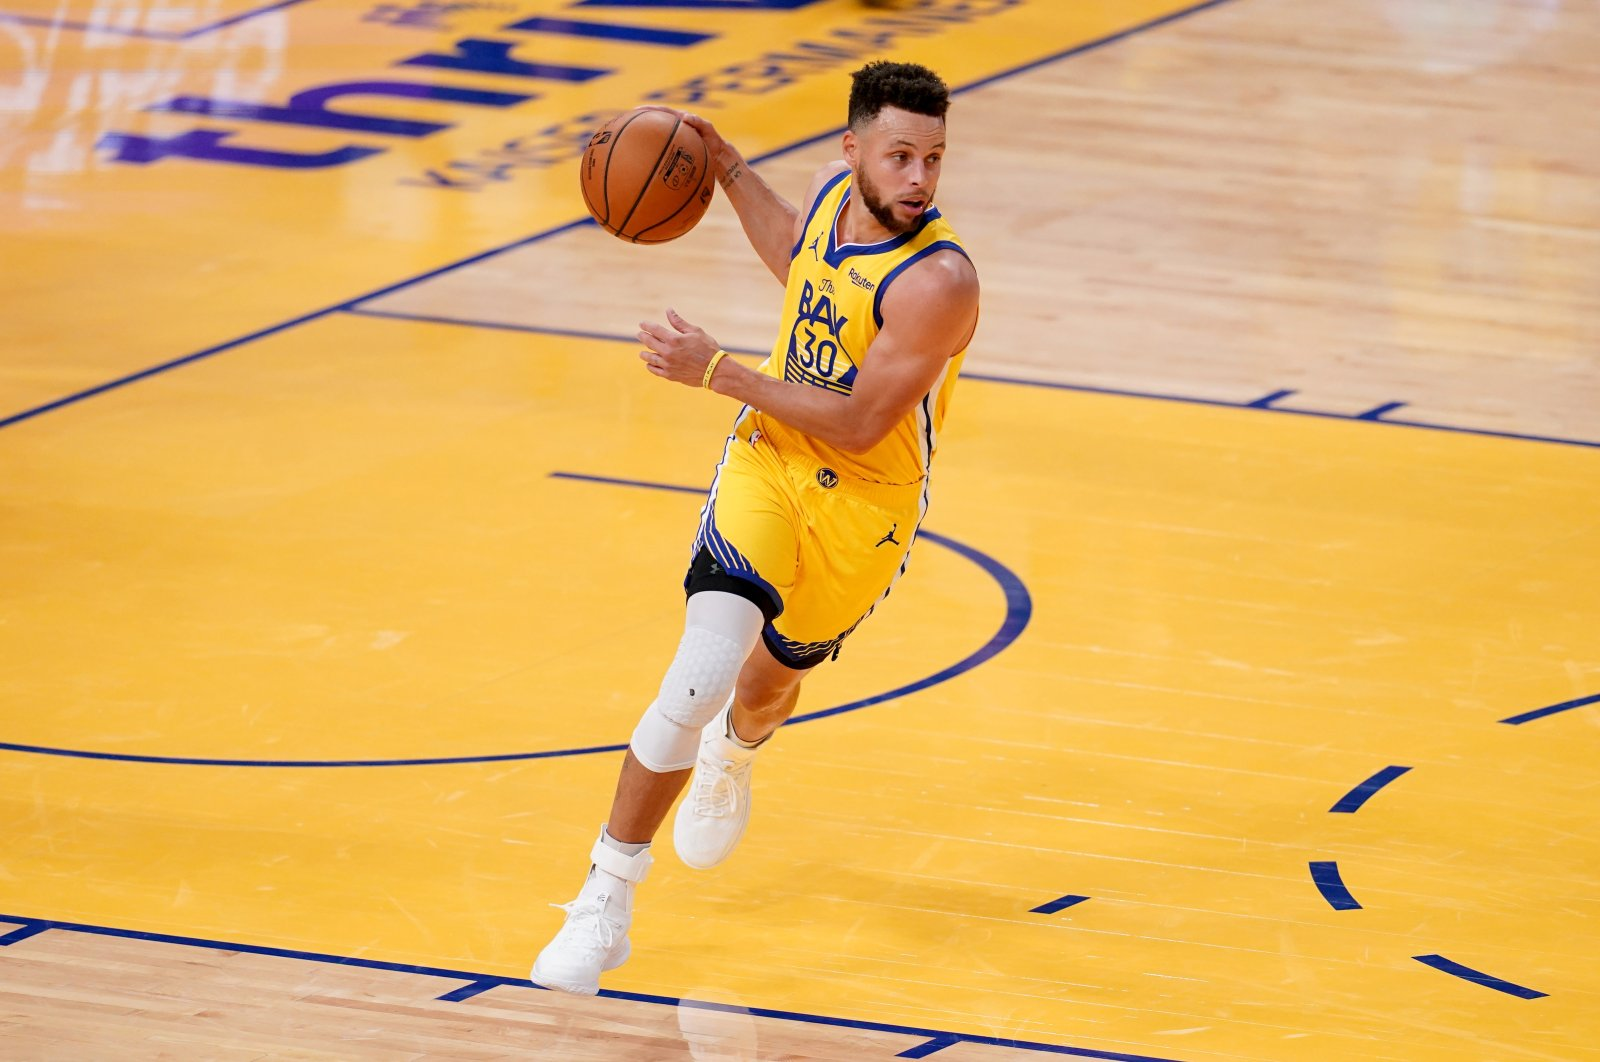 Golden State Warriors guard Stephen Curry dribbles the ball during an NBA game against the Milwaukee Bucks, at the Chase Center, San Francisco, California, U.S., April 6, 2021. (Reuters Photo)